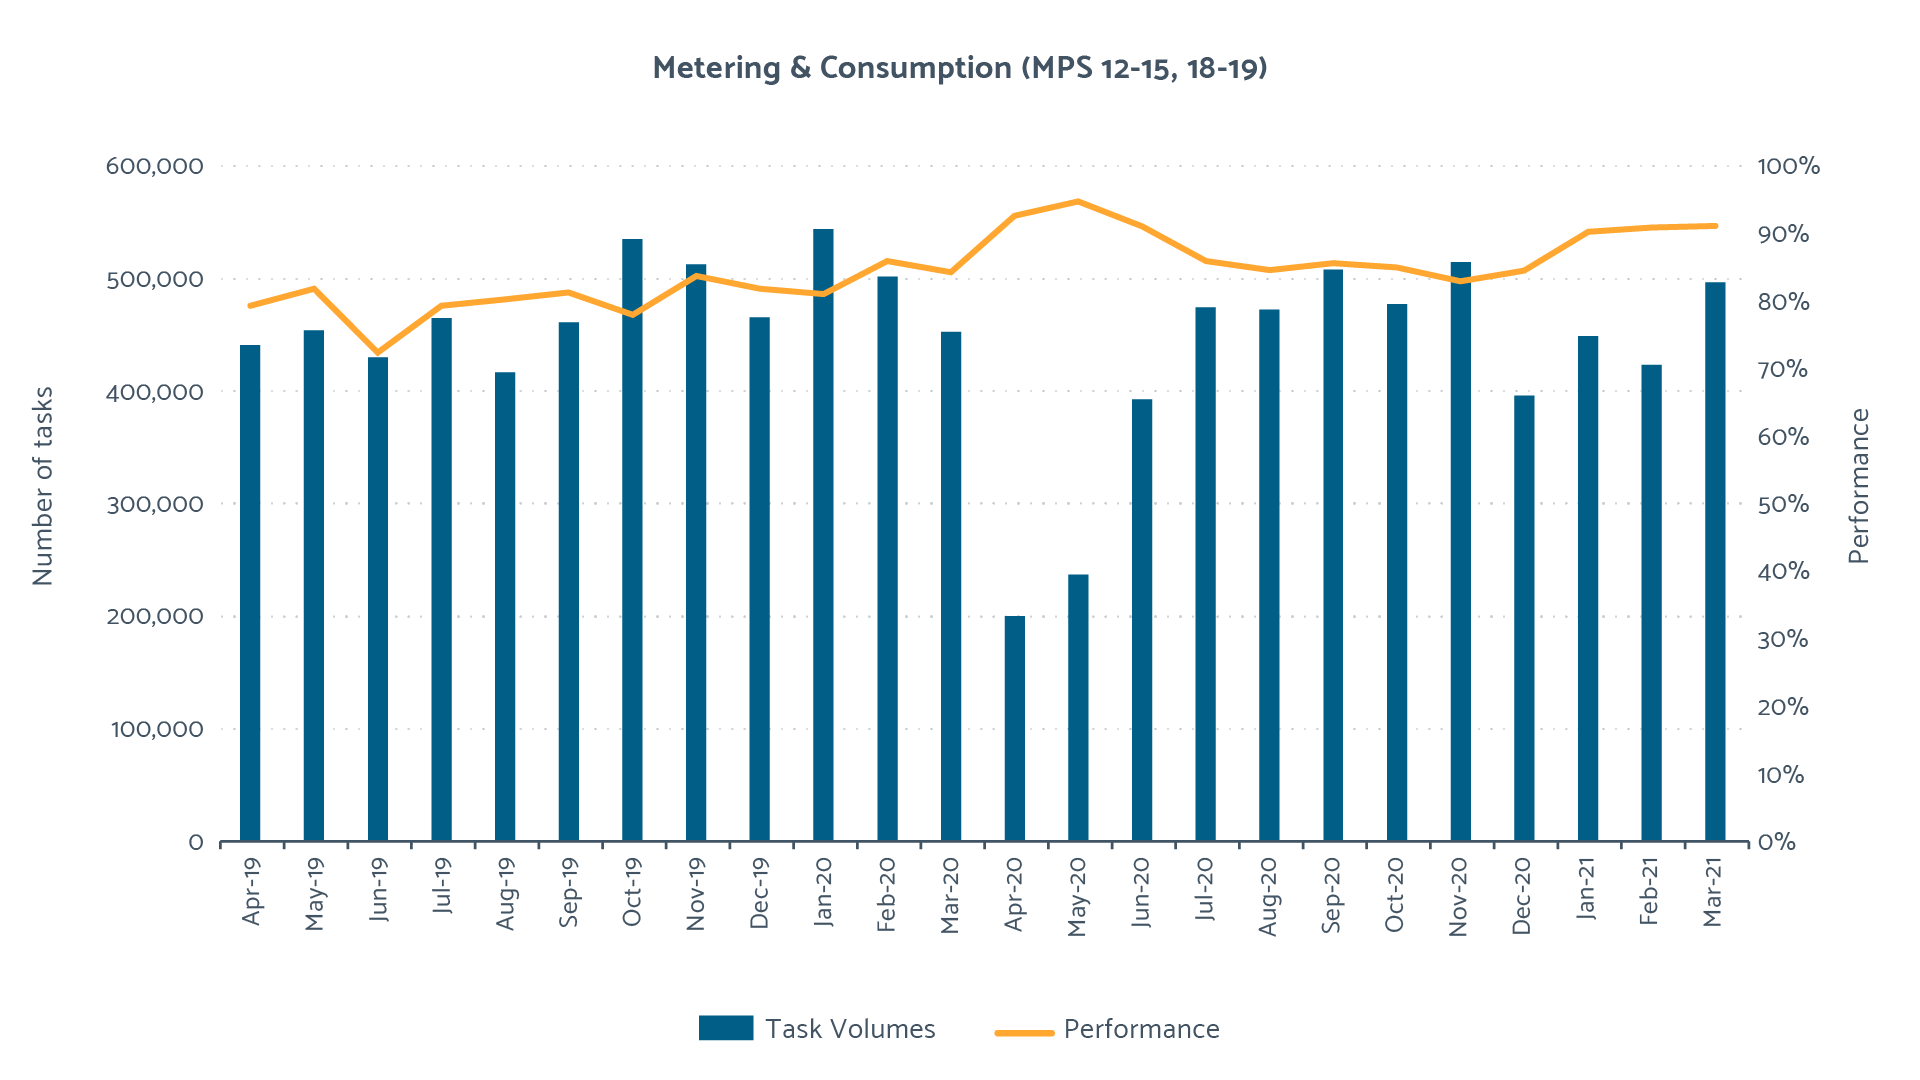 2020/21 Metering and Consumption Performance